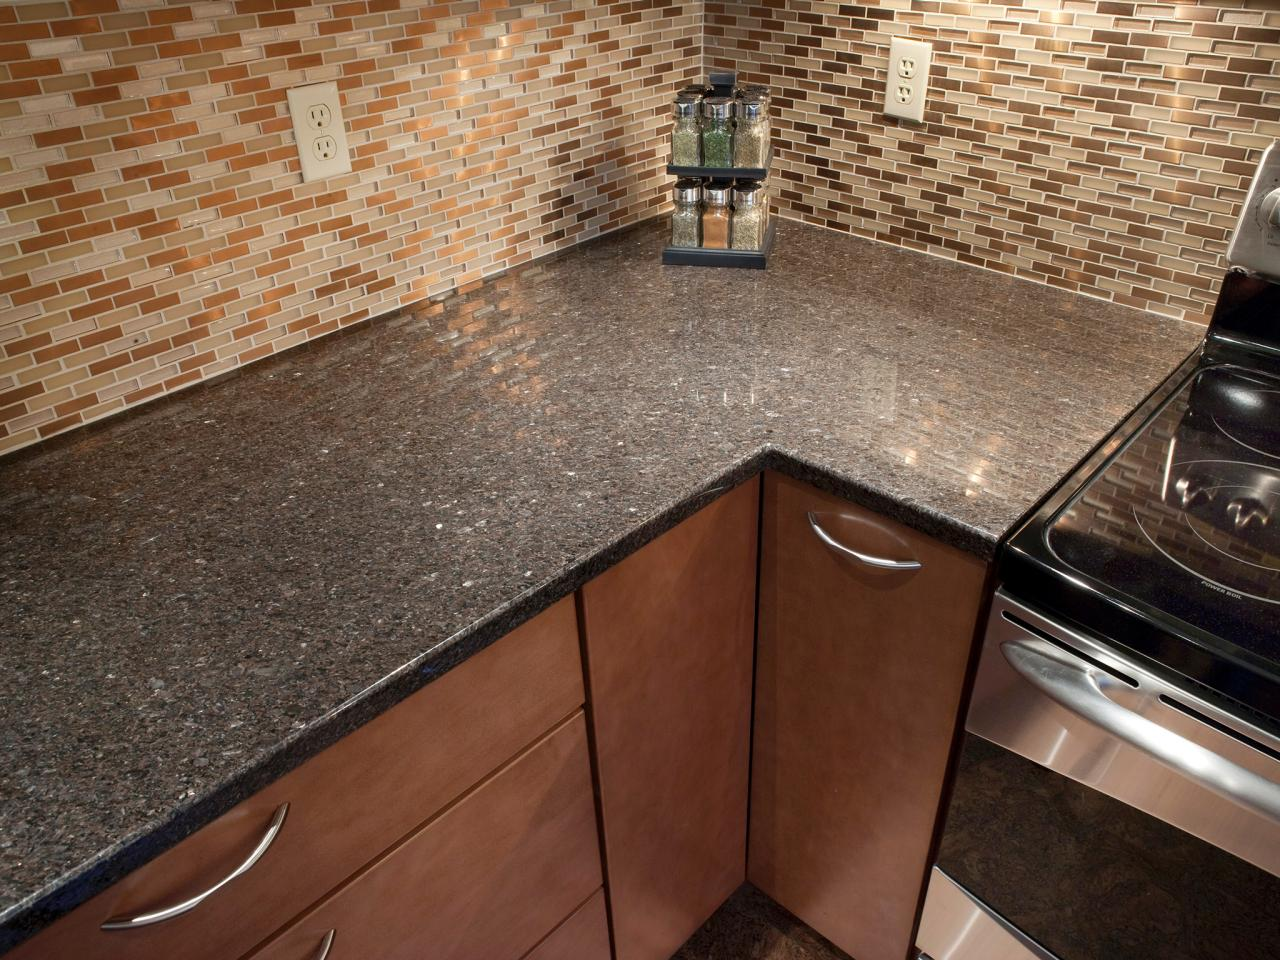 Kitchen Countertops Granite Kitchen Countertops Pictures & Ideas From Hgtv  Hgtv